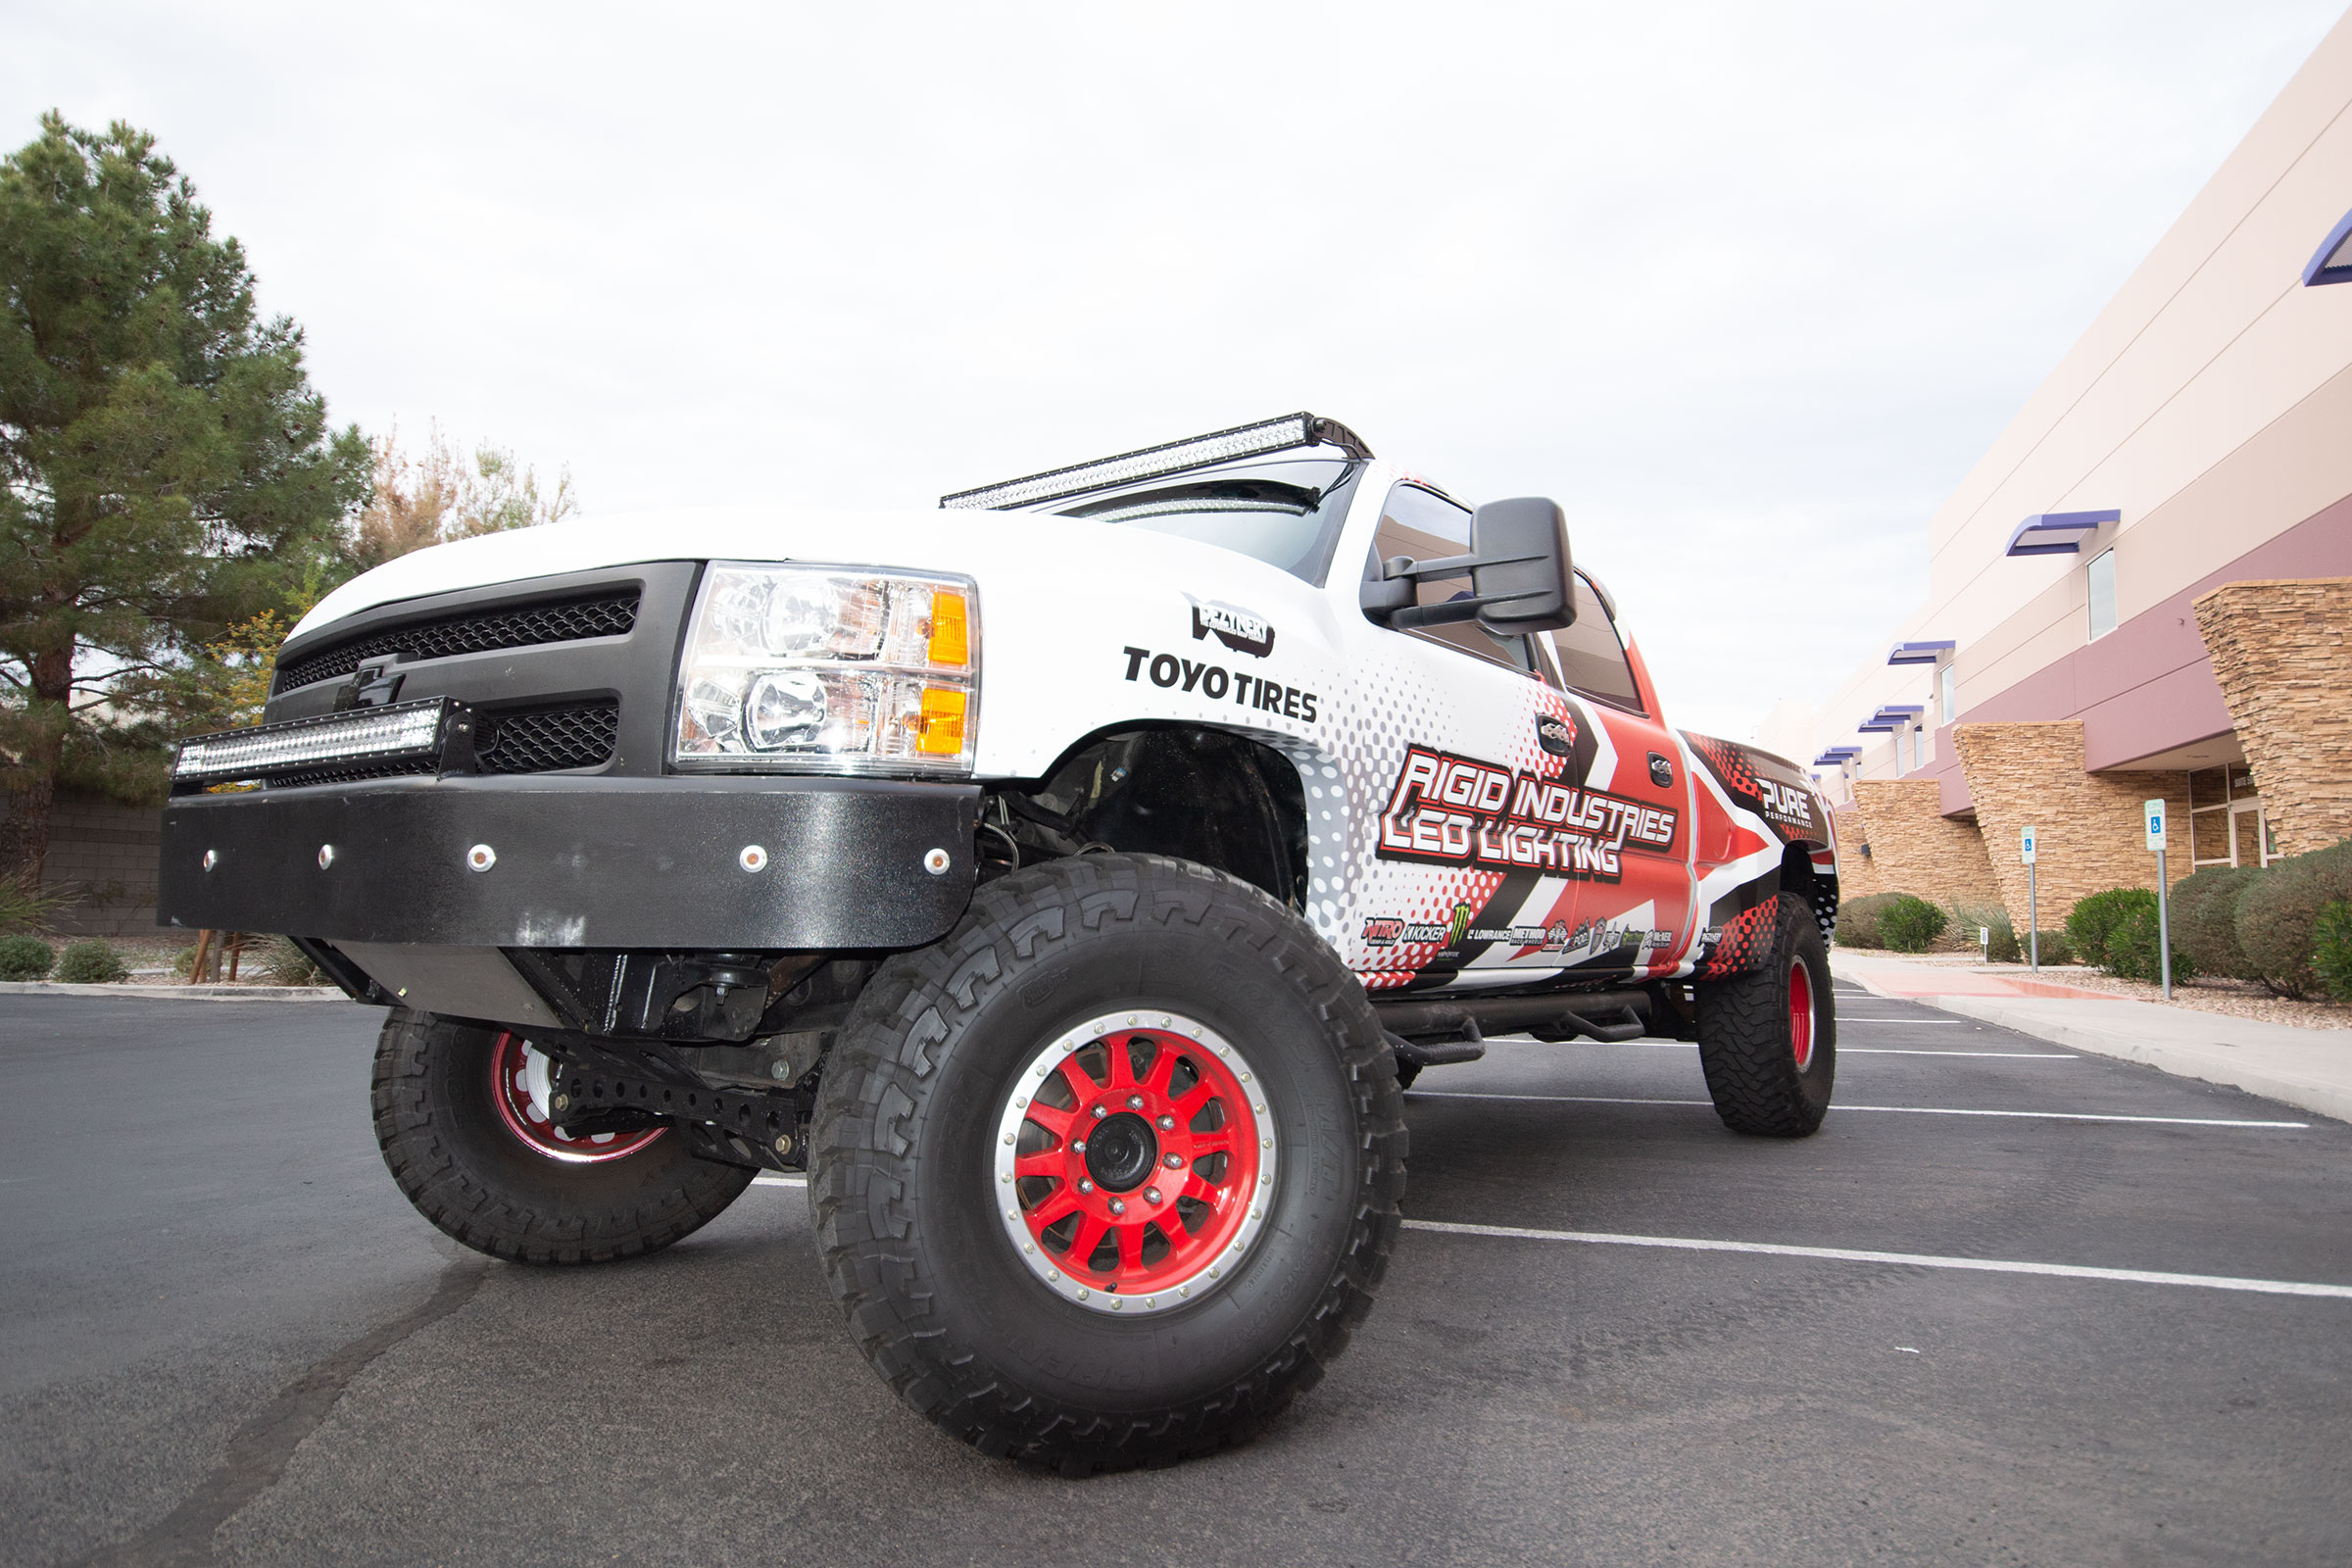 Vehicle wrap project for Rigid Industries